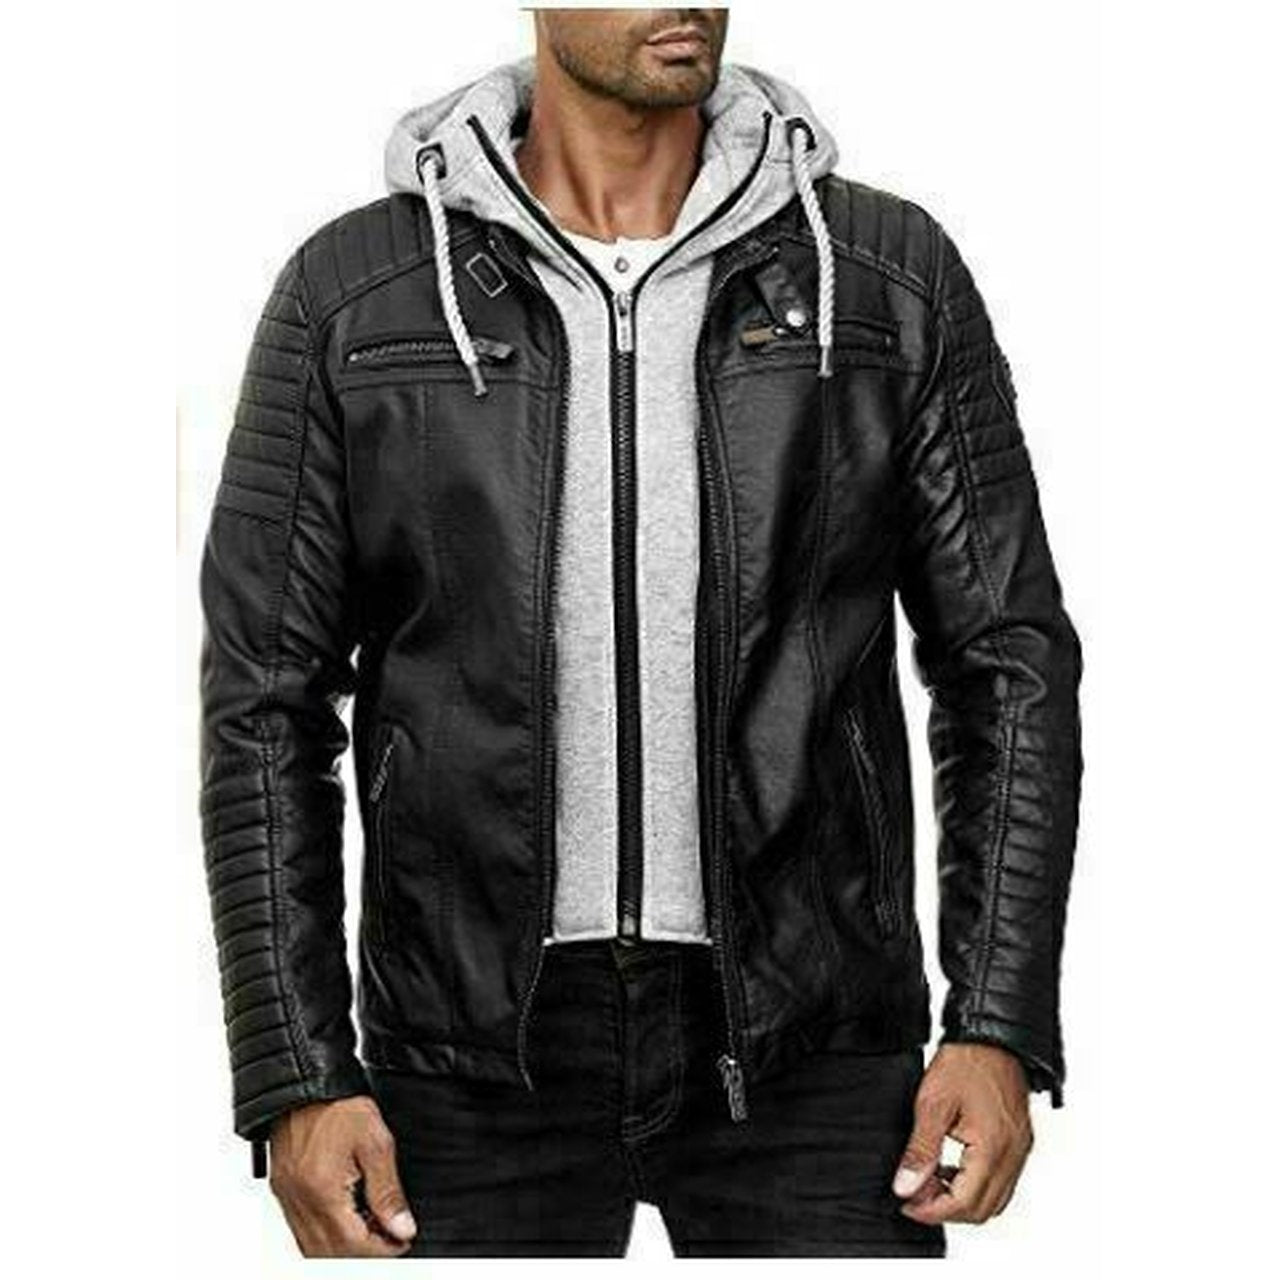 Mens Genuine Leather Jacket B3 Bomber Cafe Racer Biker Hooded Fashion Vintage